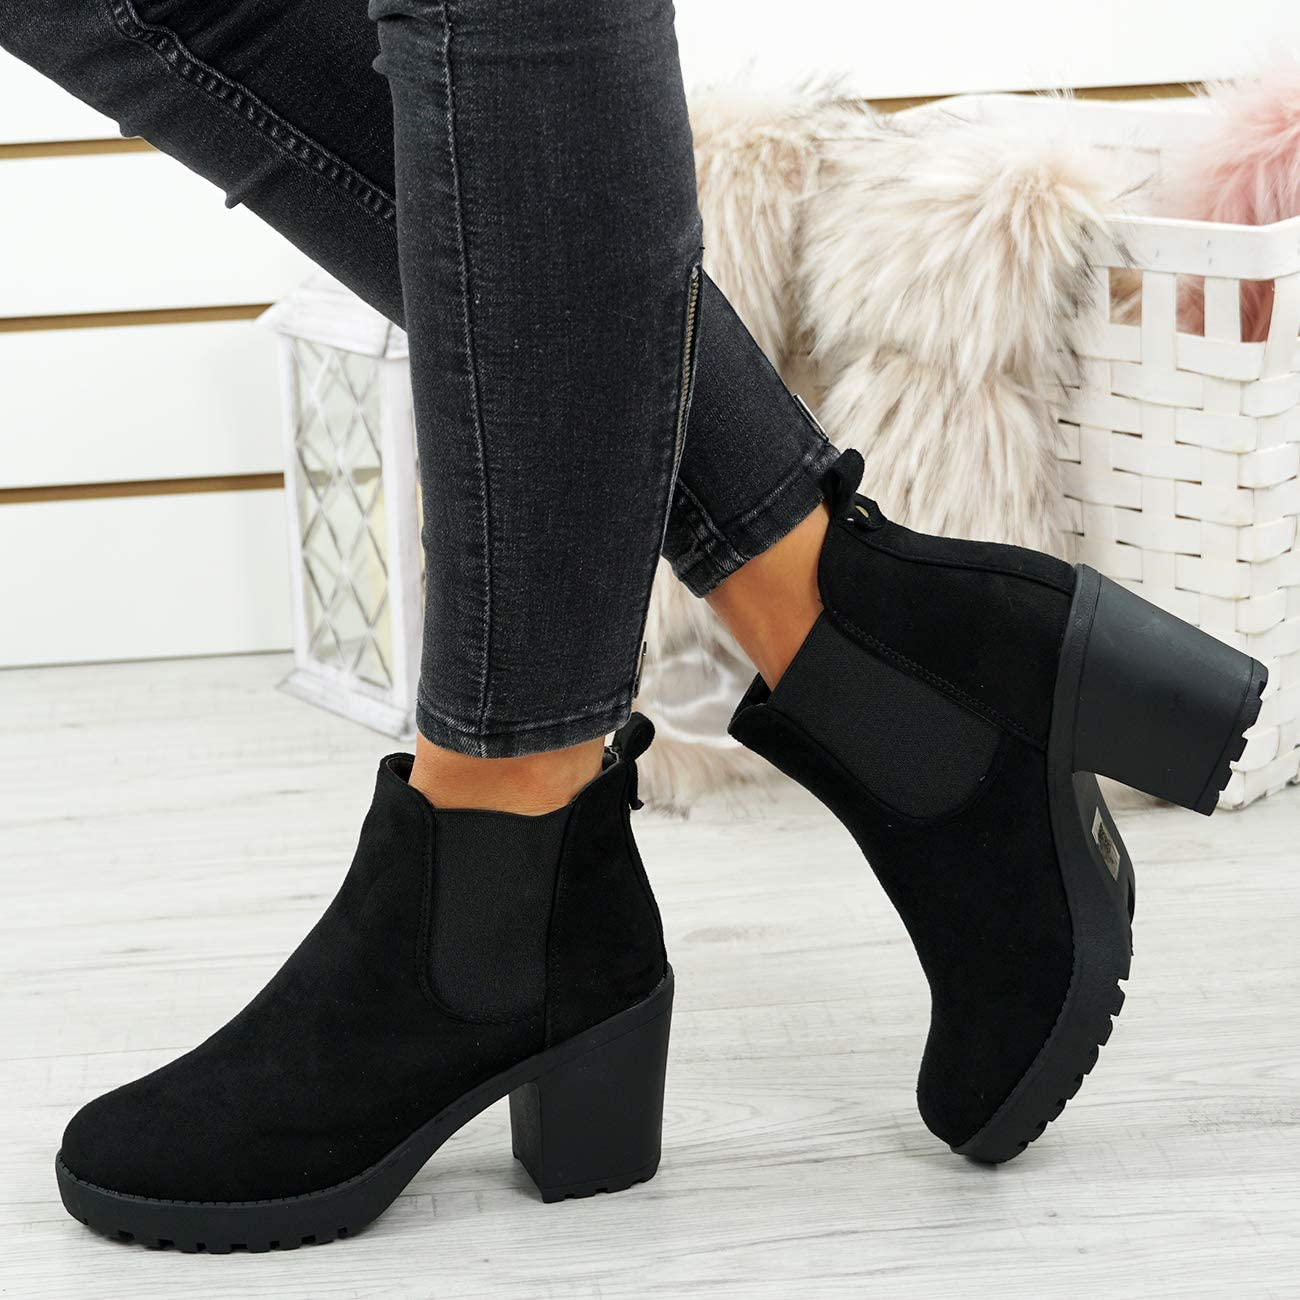 CucuFashion Ankle Boots for Women - Fashionable Chelsea Boots Women, Twin Gussets Chunky Block Heel Womens Boots, Comfortable Ladies Boots